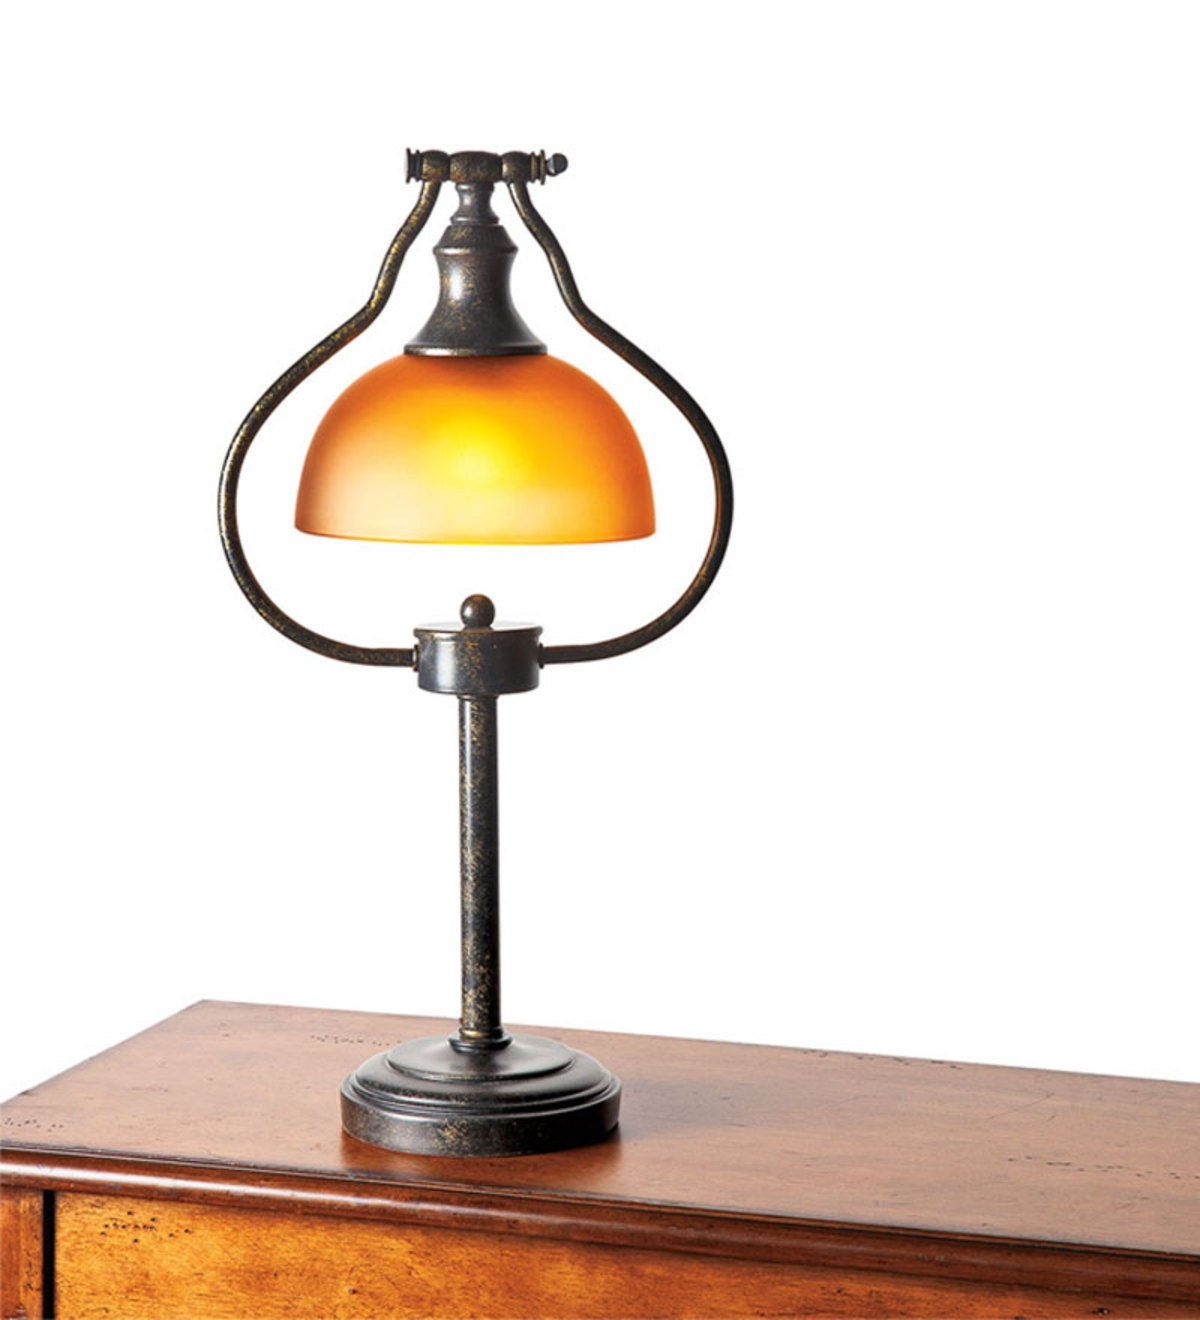 Library Floor Lamp with Amber Glass Shade and Antique Bronze Finish